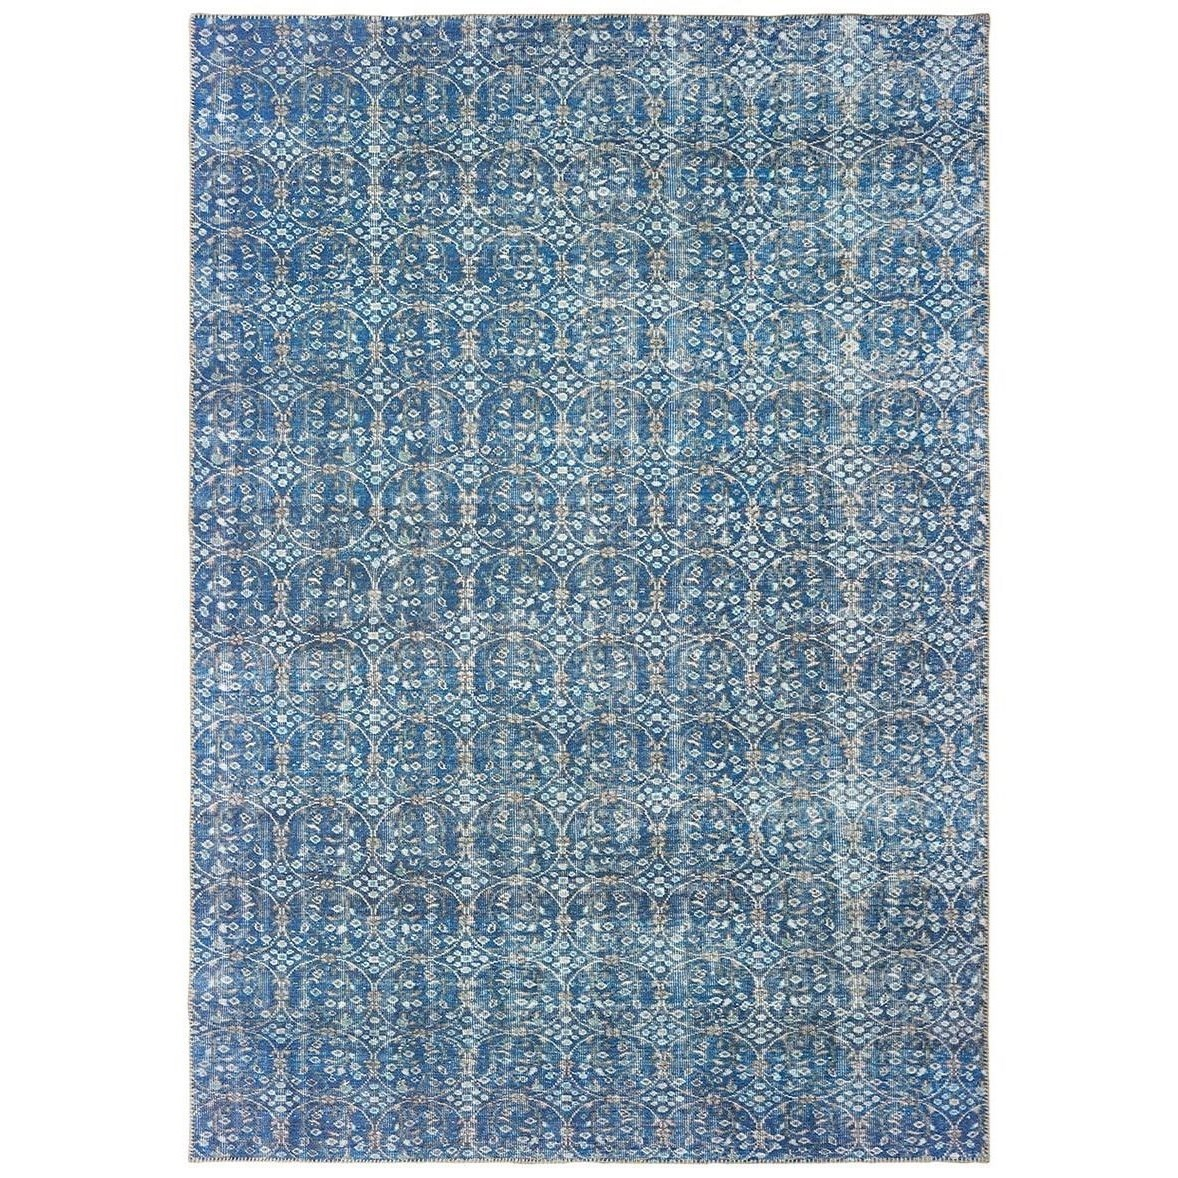 SOFIA 5x7 Rug by Oriental Weavers at Red Knot